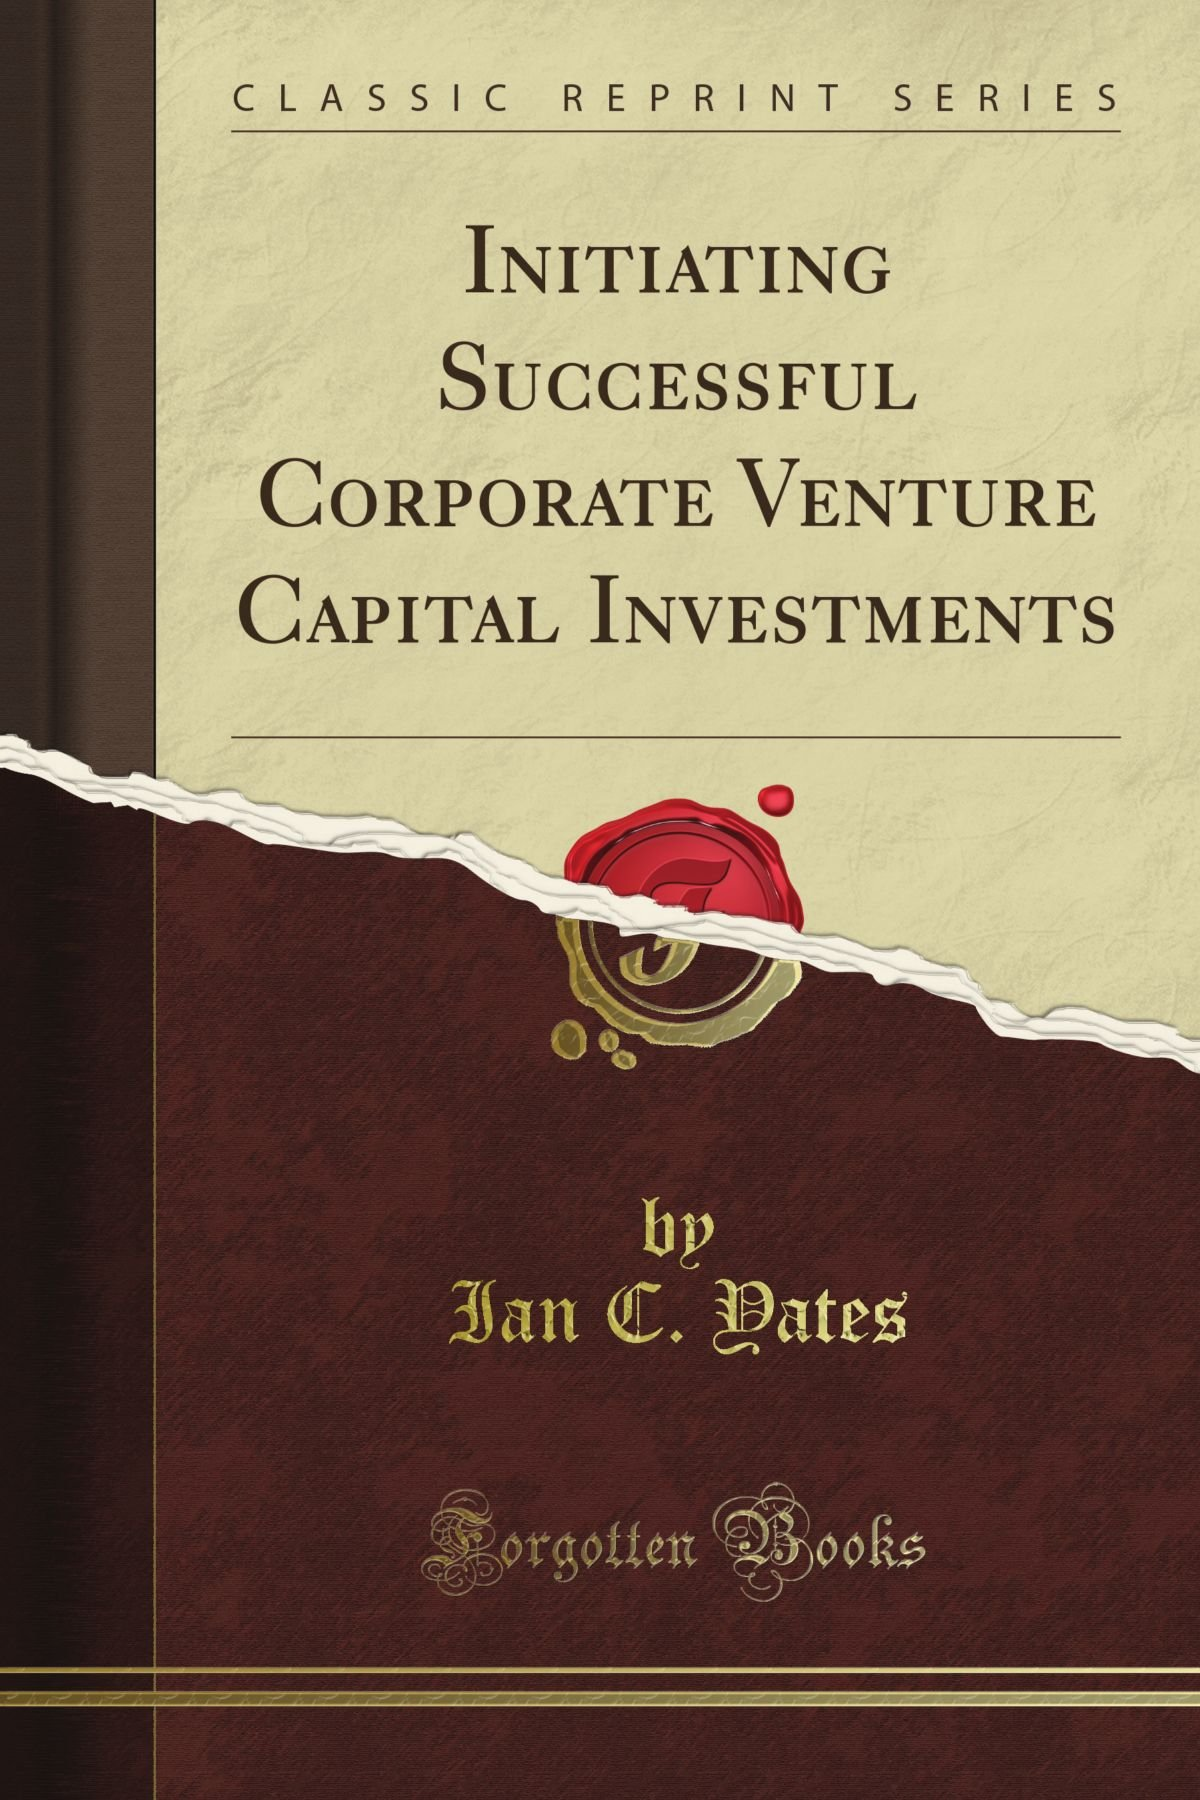 initiating-successful-corporate-venture-capital-investments-classic-reprint